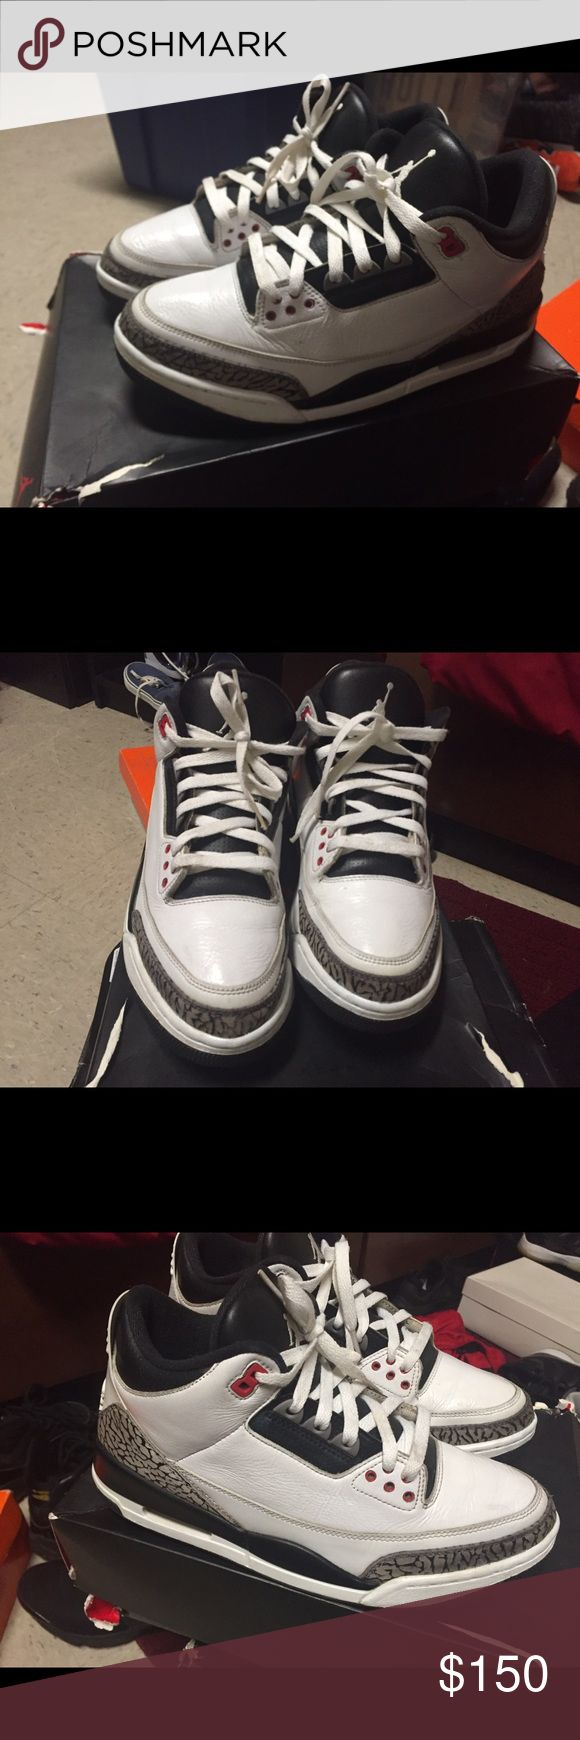 Jordan 3 Infrared, size 9.5 Jordan 3 Infrared, size 9.5. Have been worn multiple times, slightly restored in some areas, still in pretty good shape. 6/10 condition. If you are interested, Please contact me! Do not purchase through Poshmark 864-245-6027. This will allow me to drop the prices of merchandise and you get a much better deal. Thanks Jordan Shoes Sneakers